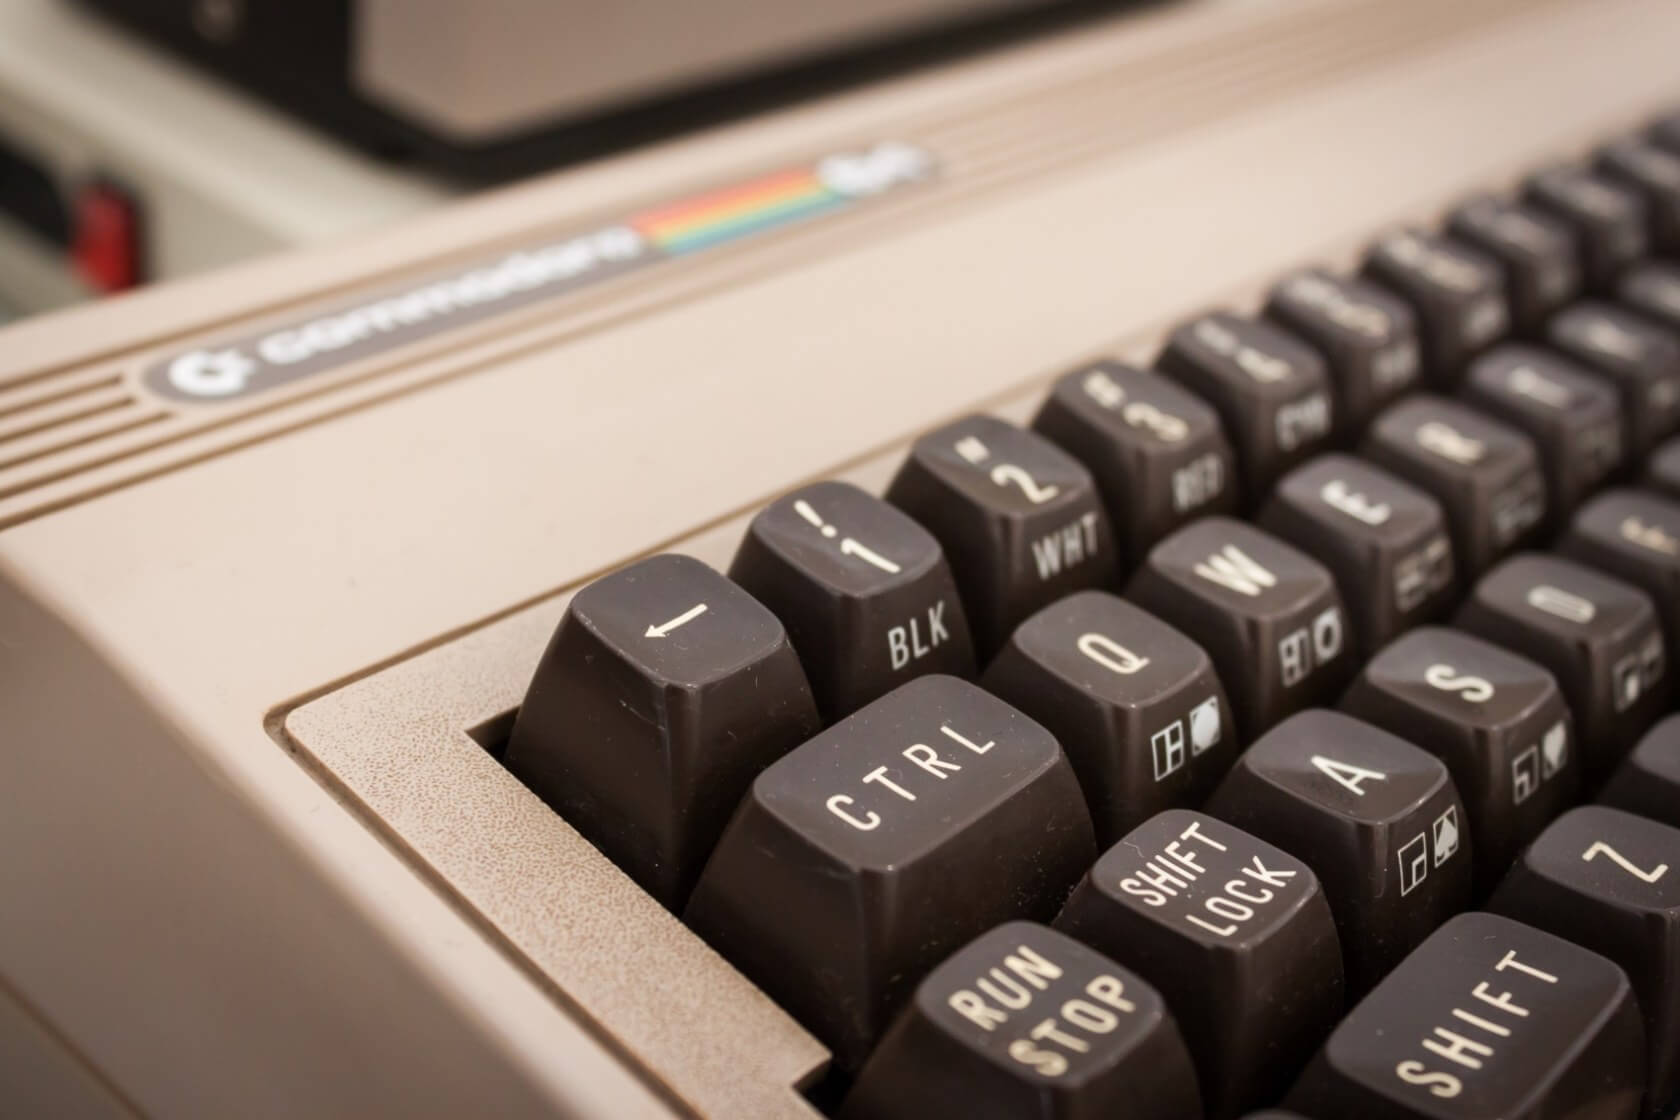 The Internet Archive just got a working Commodore 64 Emulator